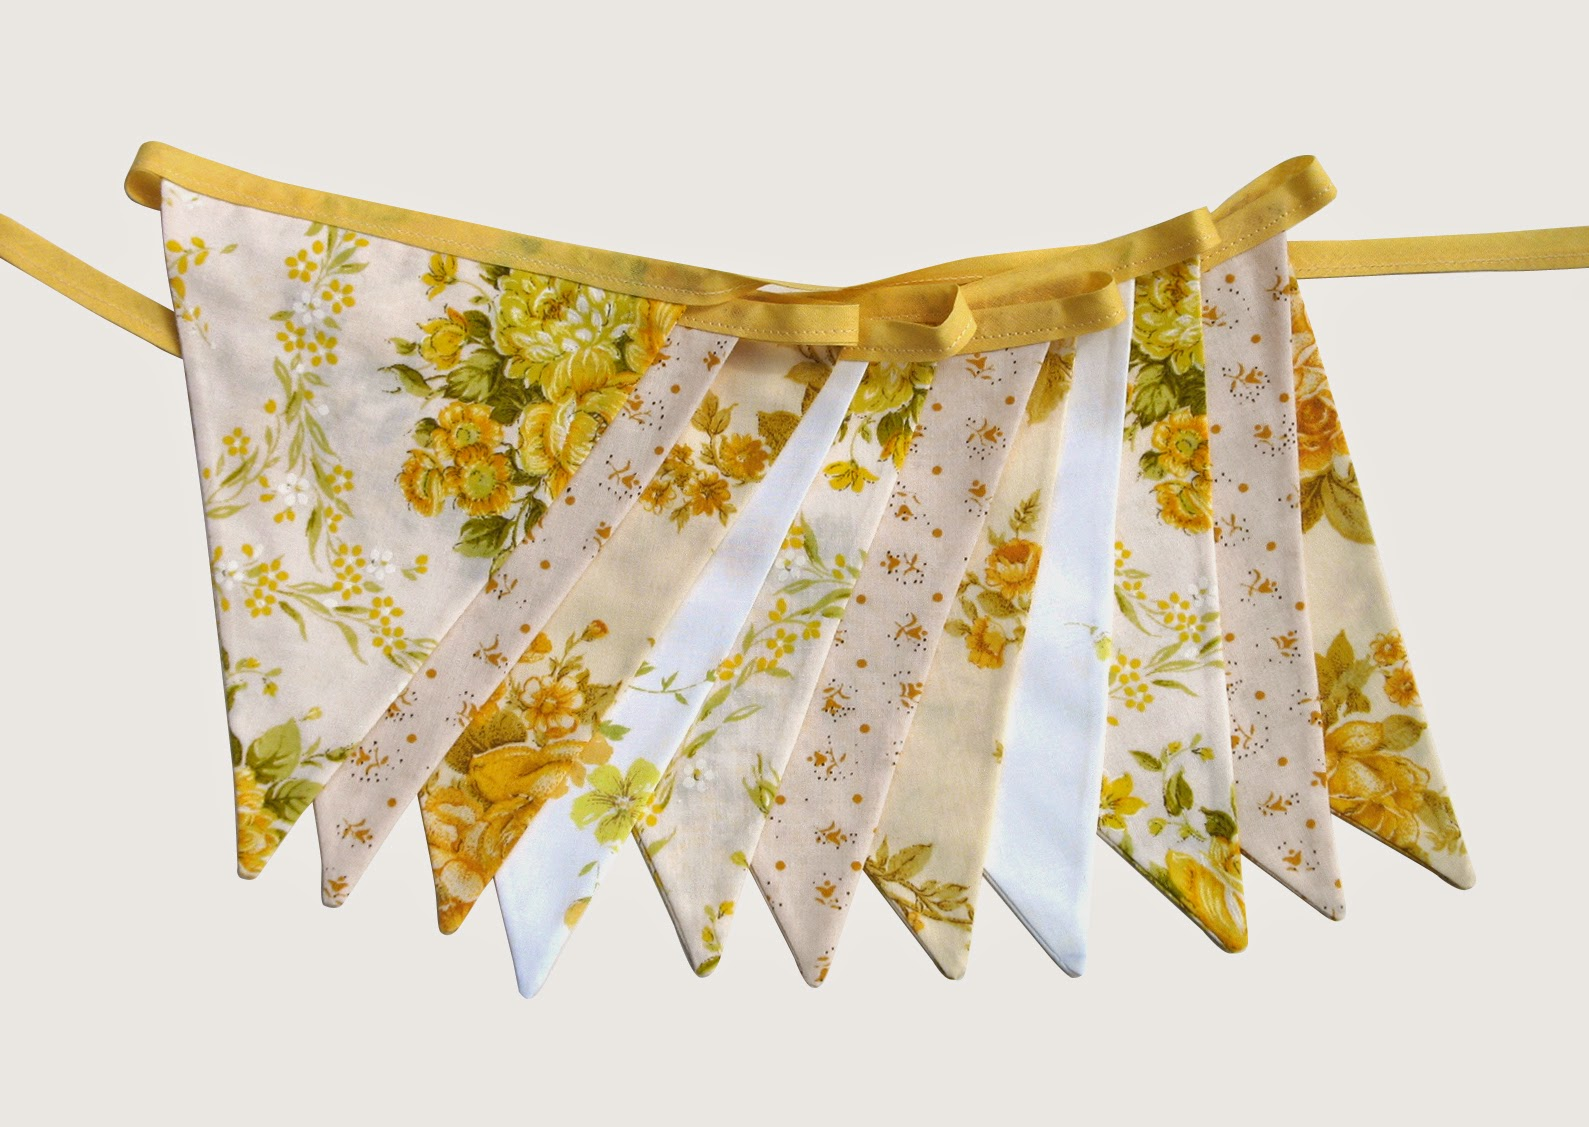 Vintage Retro YELLOW Floral Flag Bunting. Party, Home Decoration, Wedding